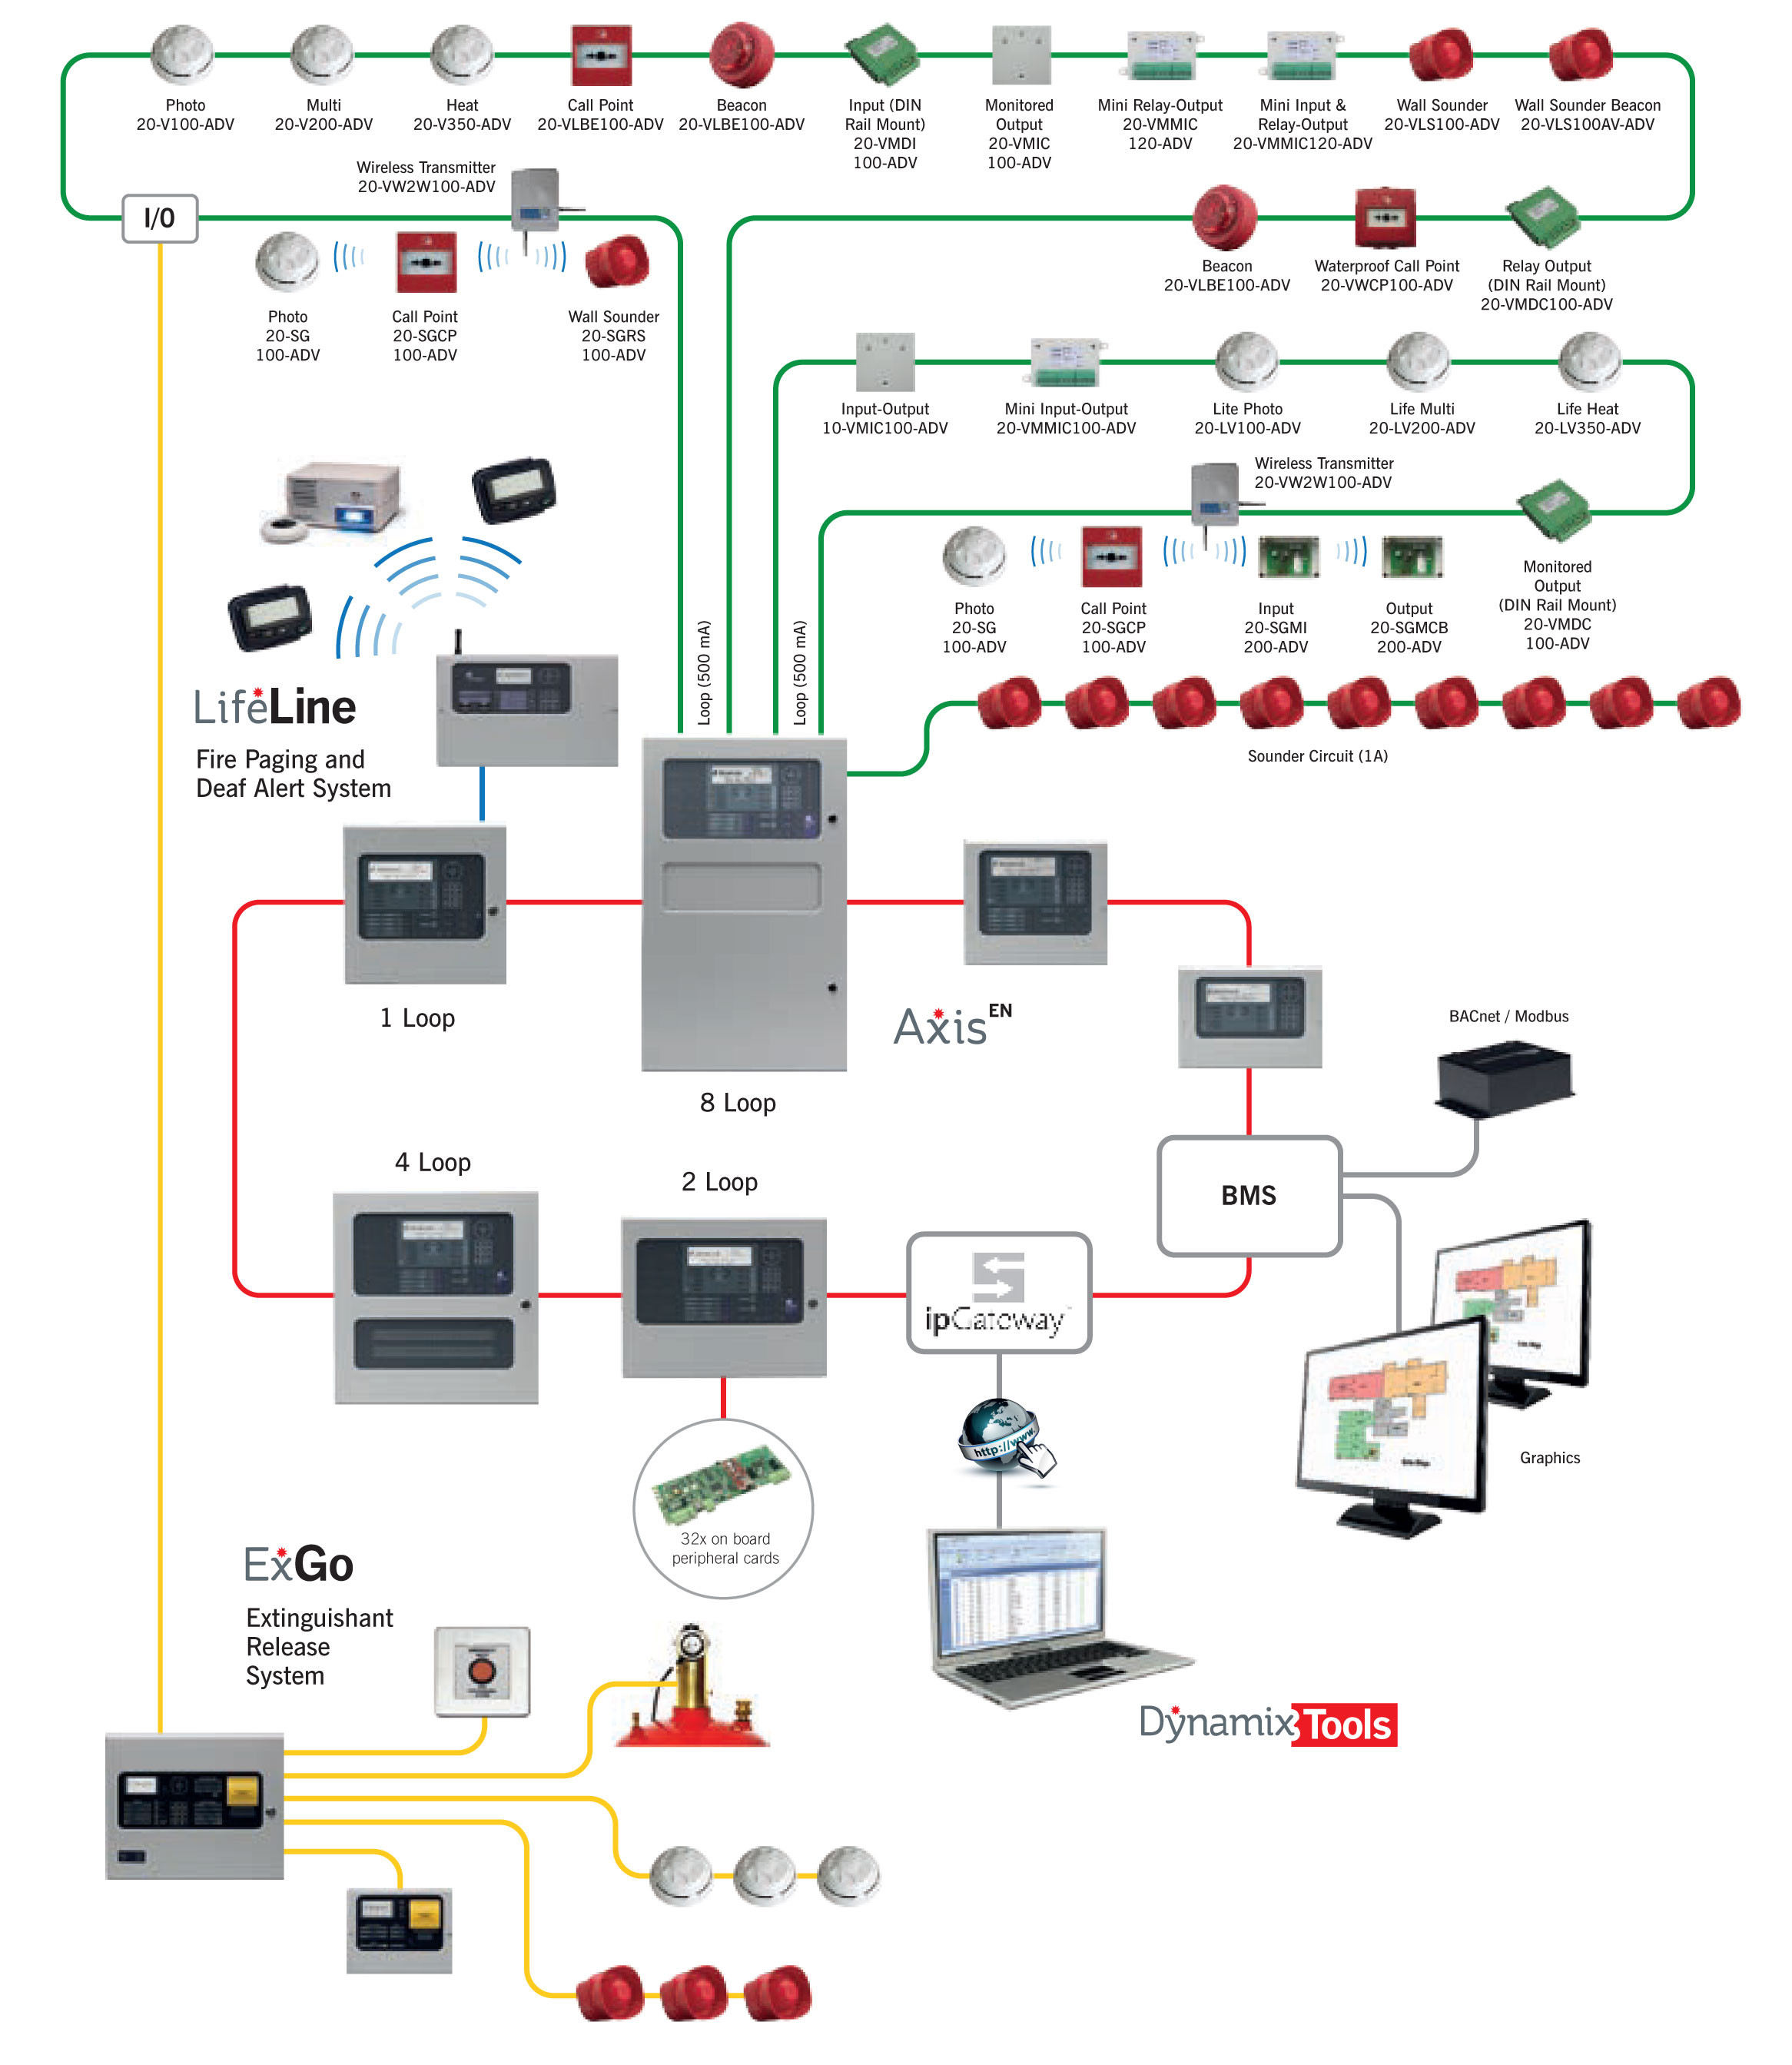 addressable fire alarm system wiring diagram Collection-Ademco Alarm Wiring Diagram Refrence Fire Alarm Addressable System Wiring Diagram For And Pdf Inside 13-o